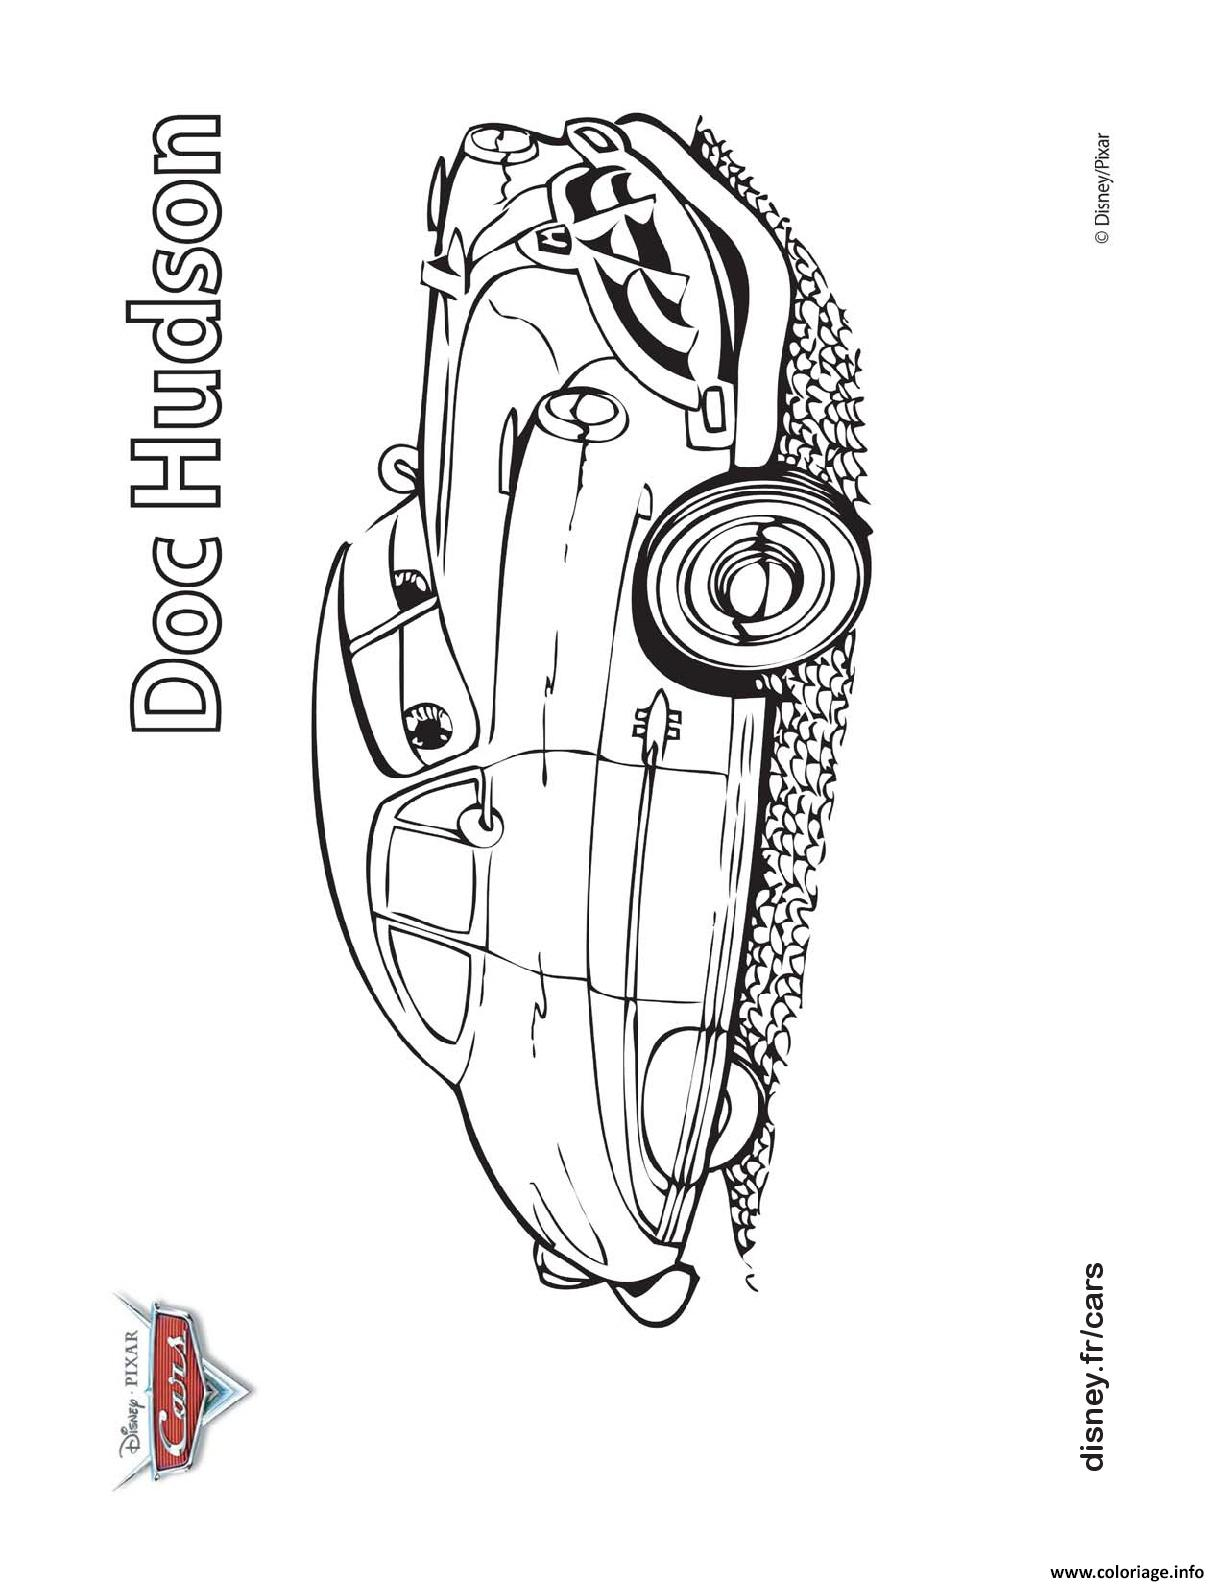 Coloriage Flash Mcqueen Et Doc Hudson.Coloriage Doc Hudson Cars Disney Jecolorie Com